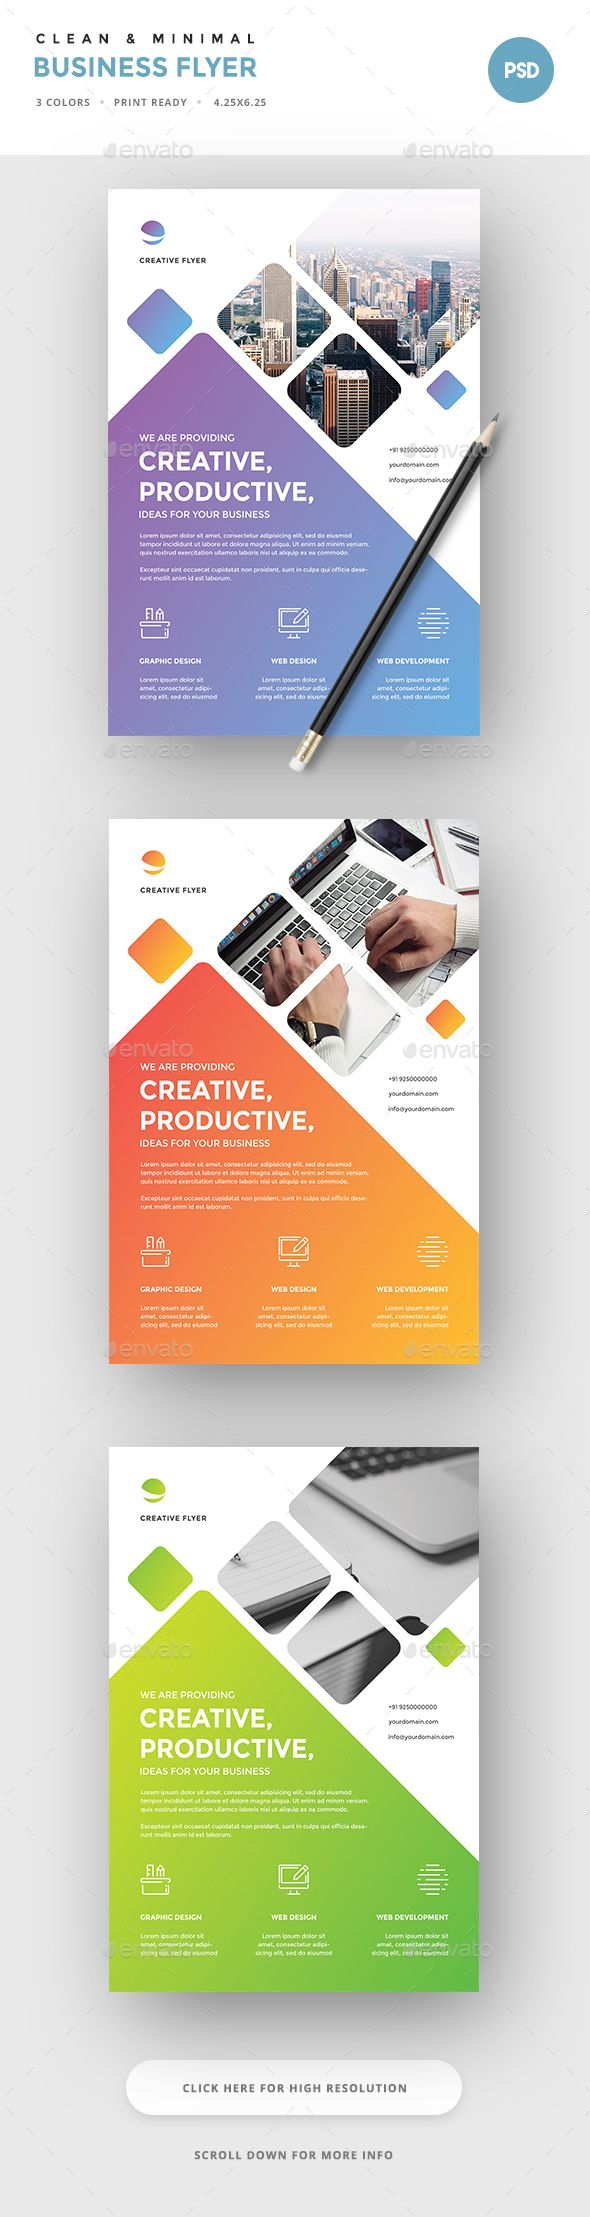 Flyer Design Ideas flyer design Get Your Attractive And Professional Real Estate Brochure Design Within 24 Hours Https